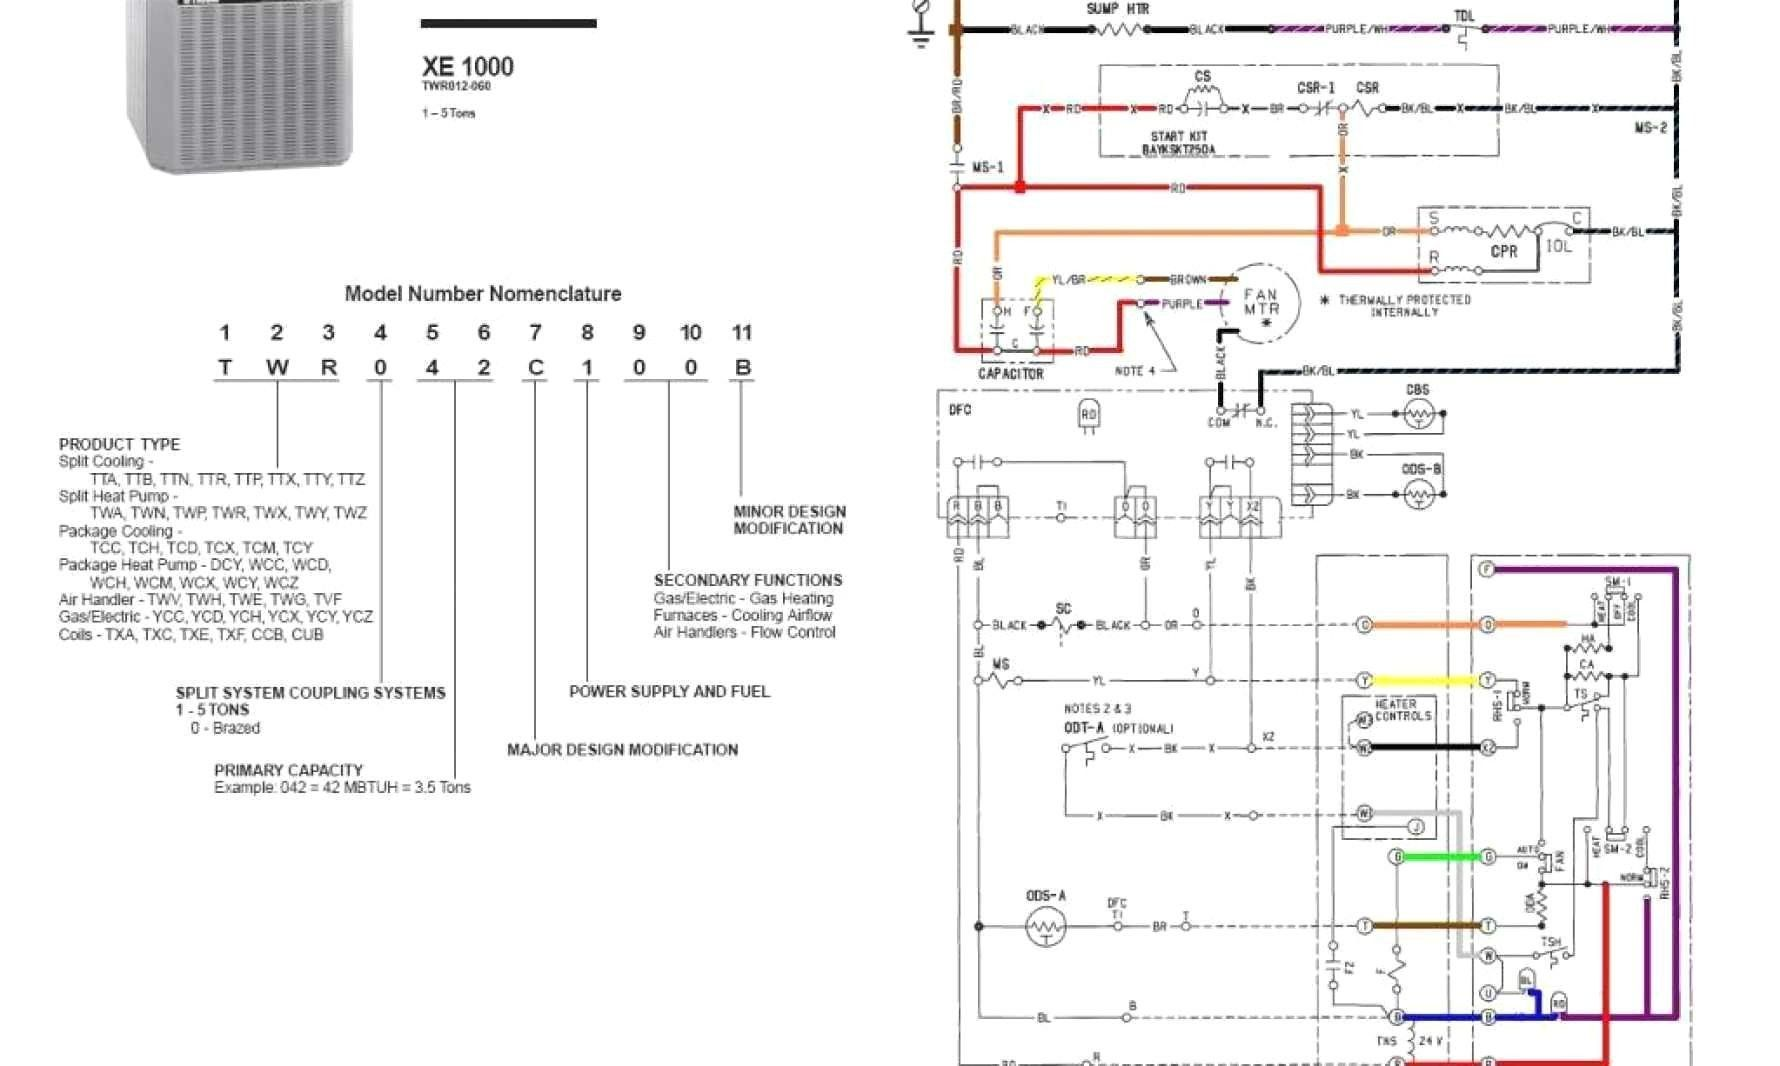 trane furnace wiring schematics carbonvote mudit blog \u2022